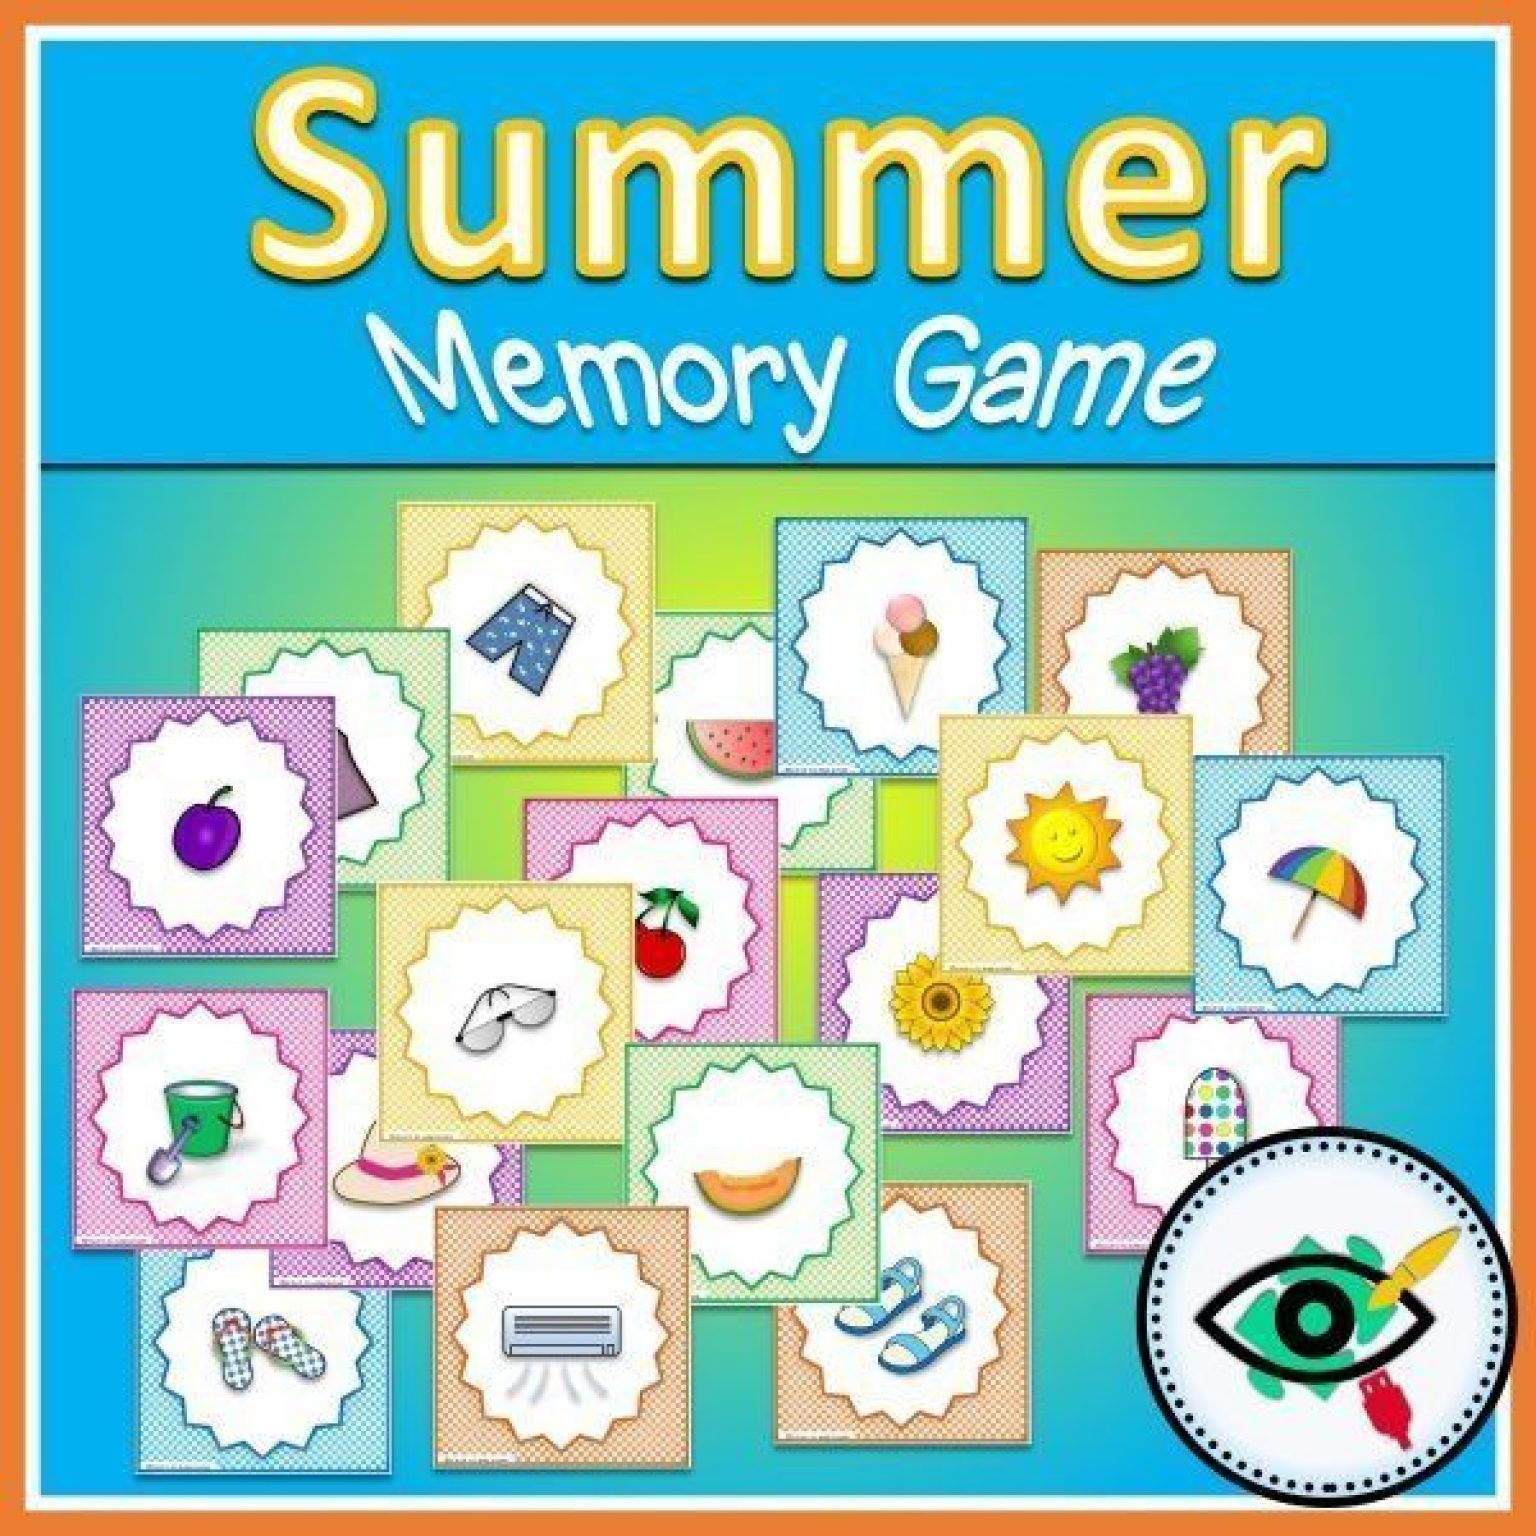 summer-memory-game-e-title3